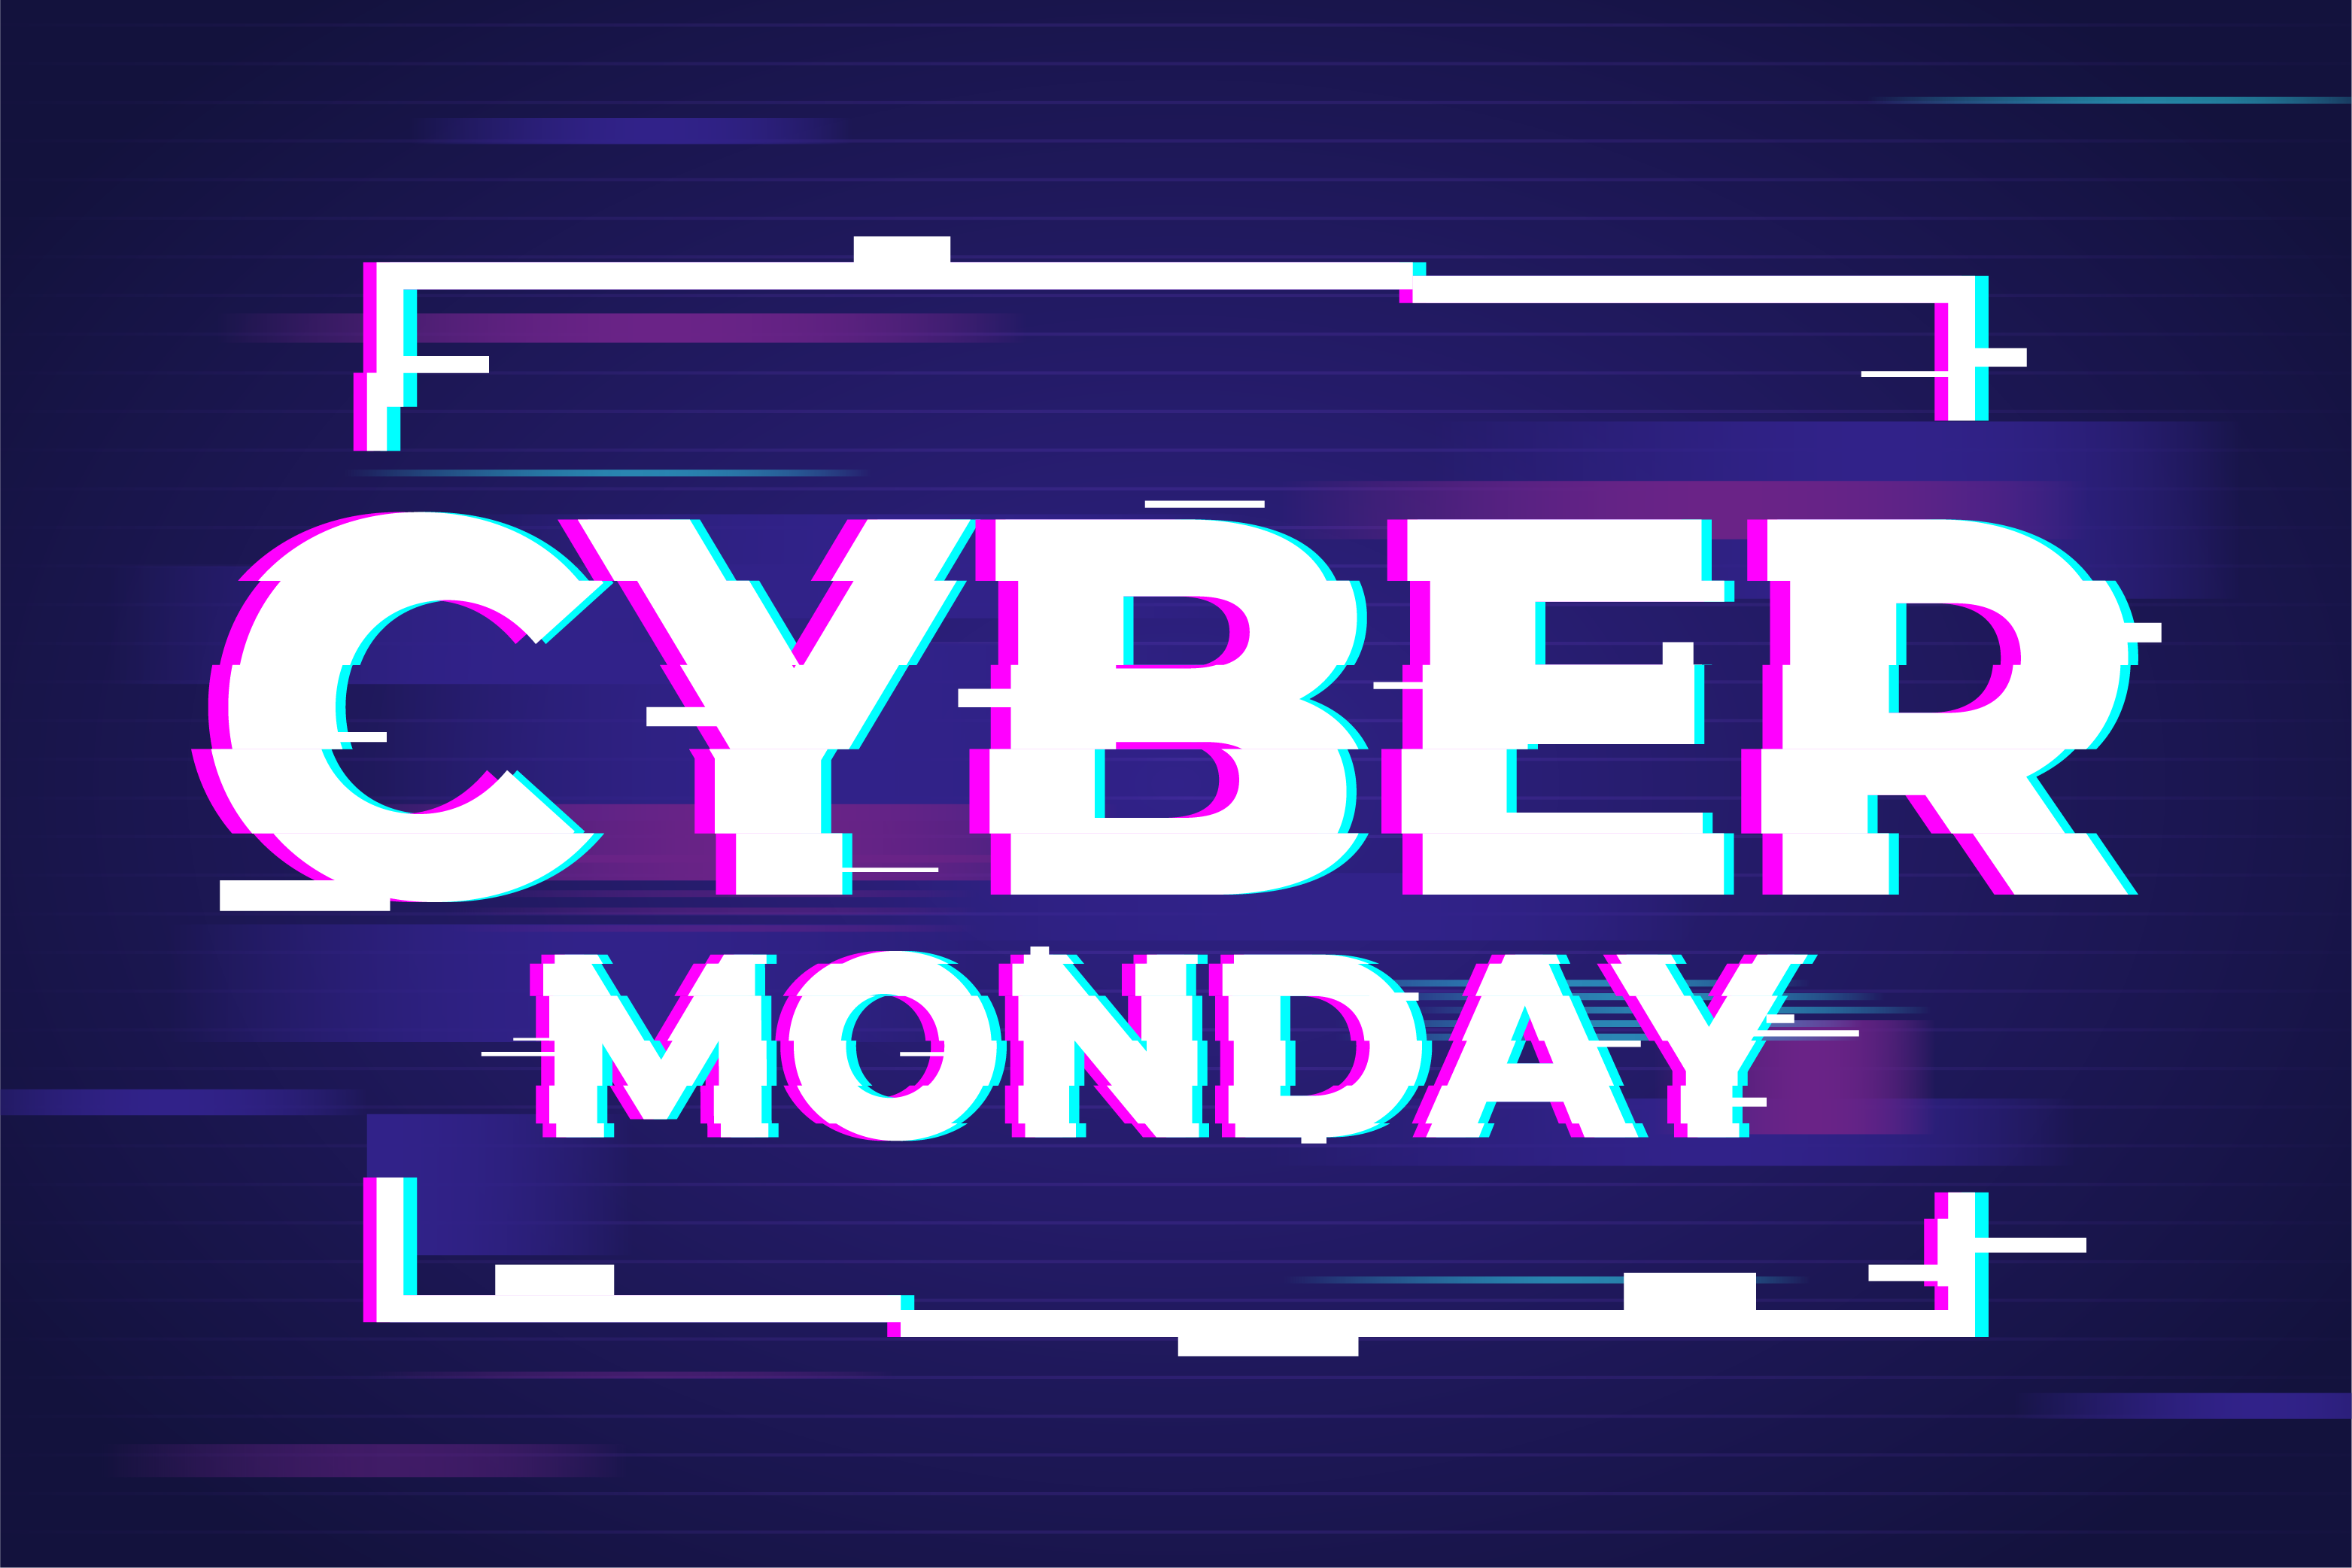 Cyber Monday deals over the B2B holiday marketing season